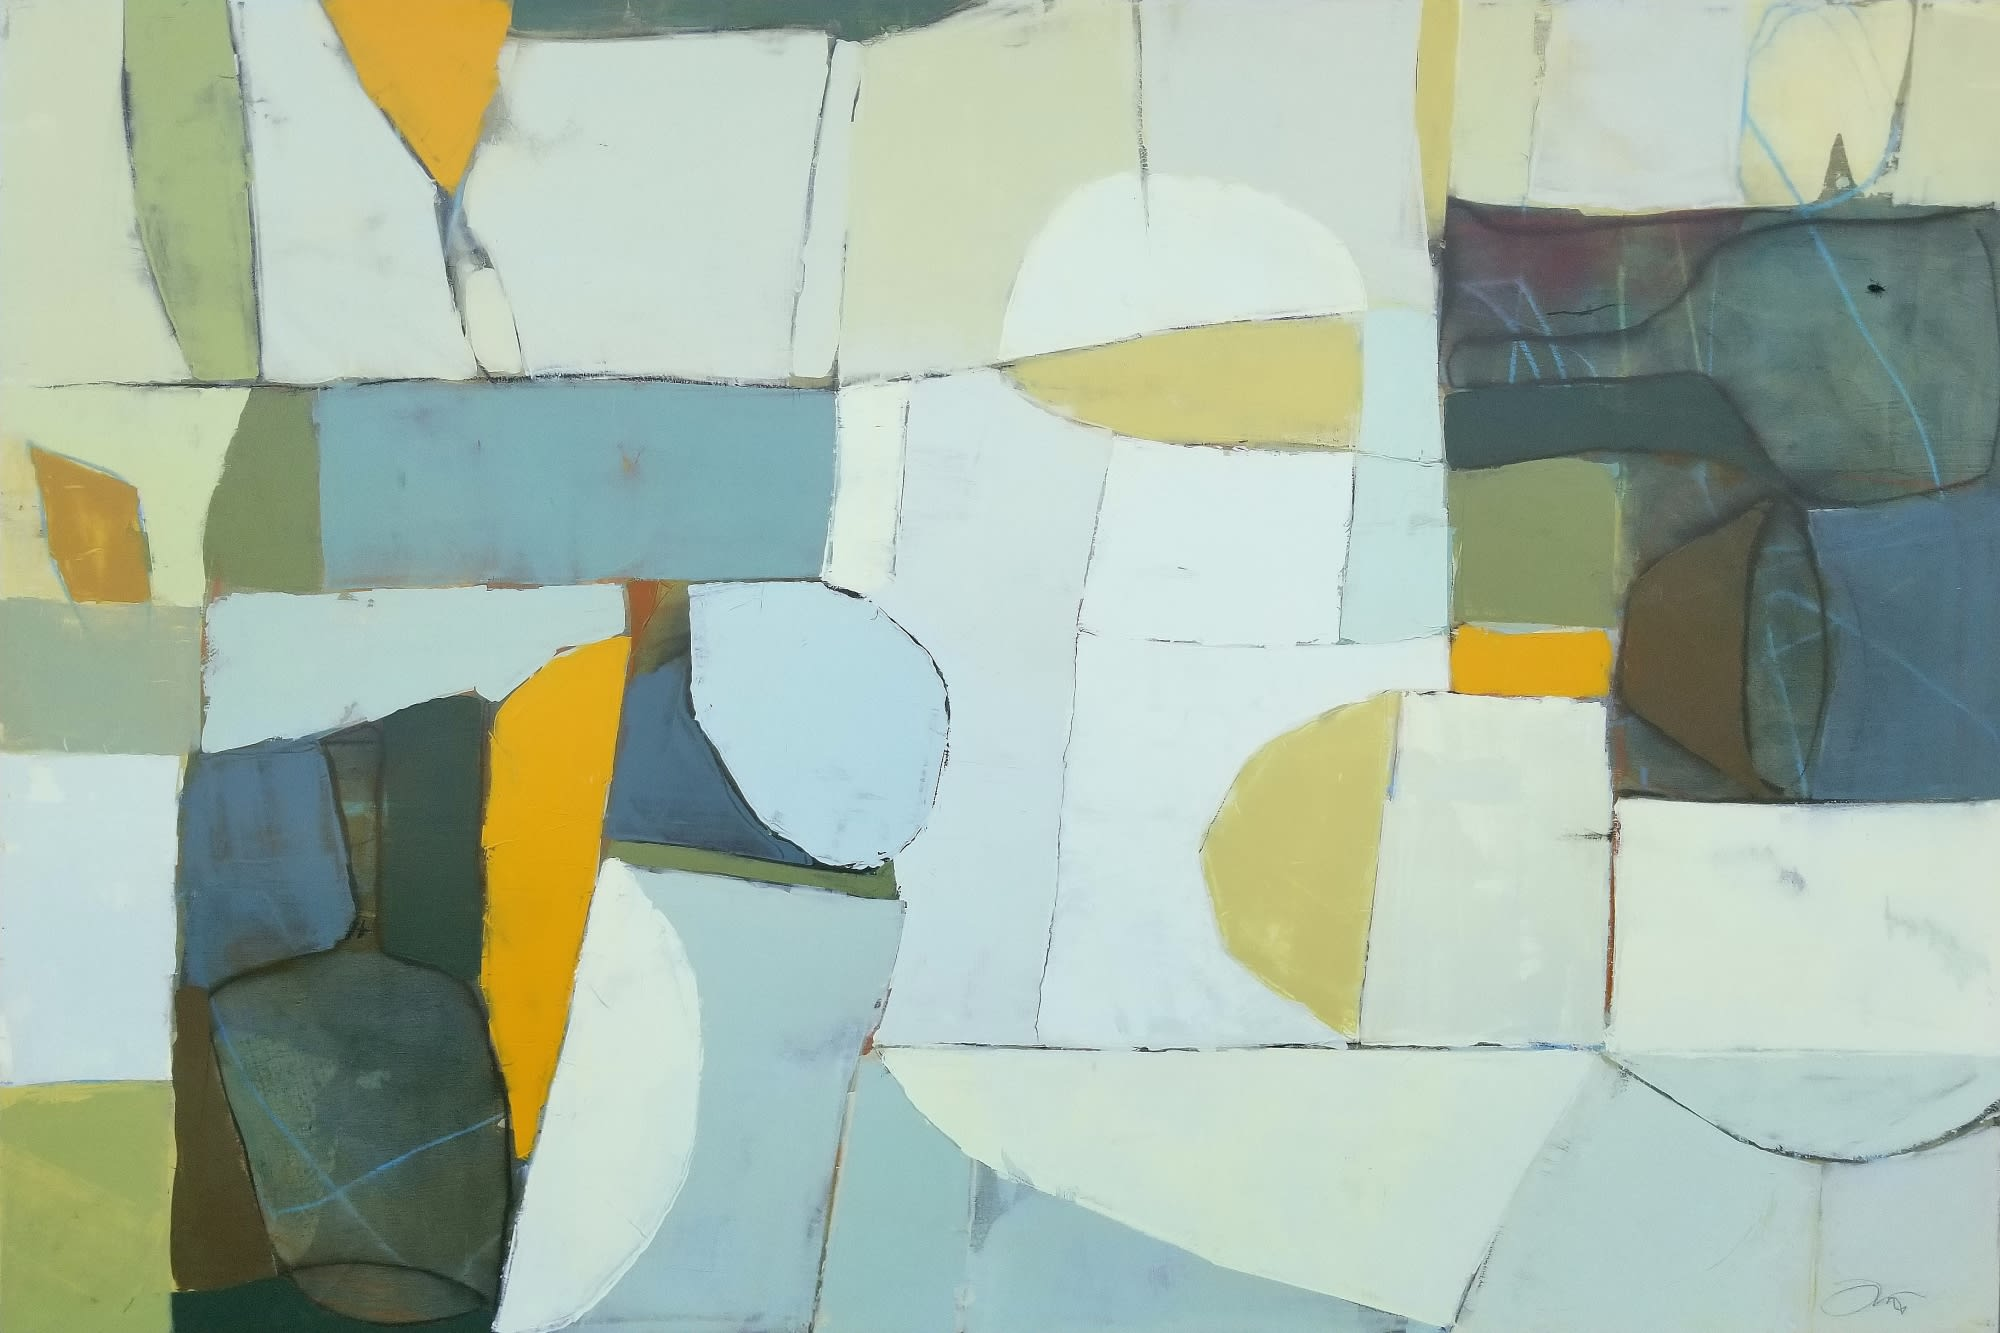 'Passing Reflection' by Jacques Pilon at Gallery 133